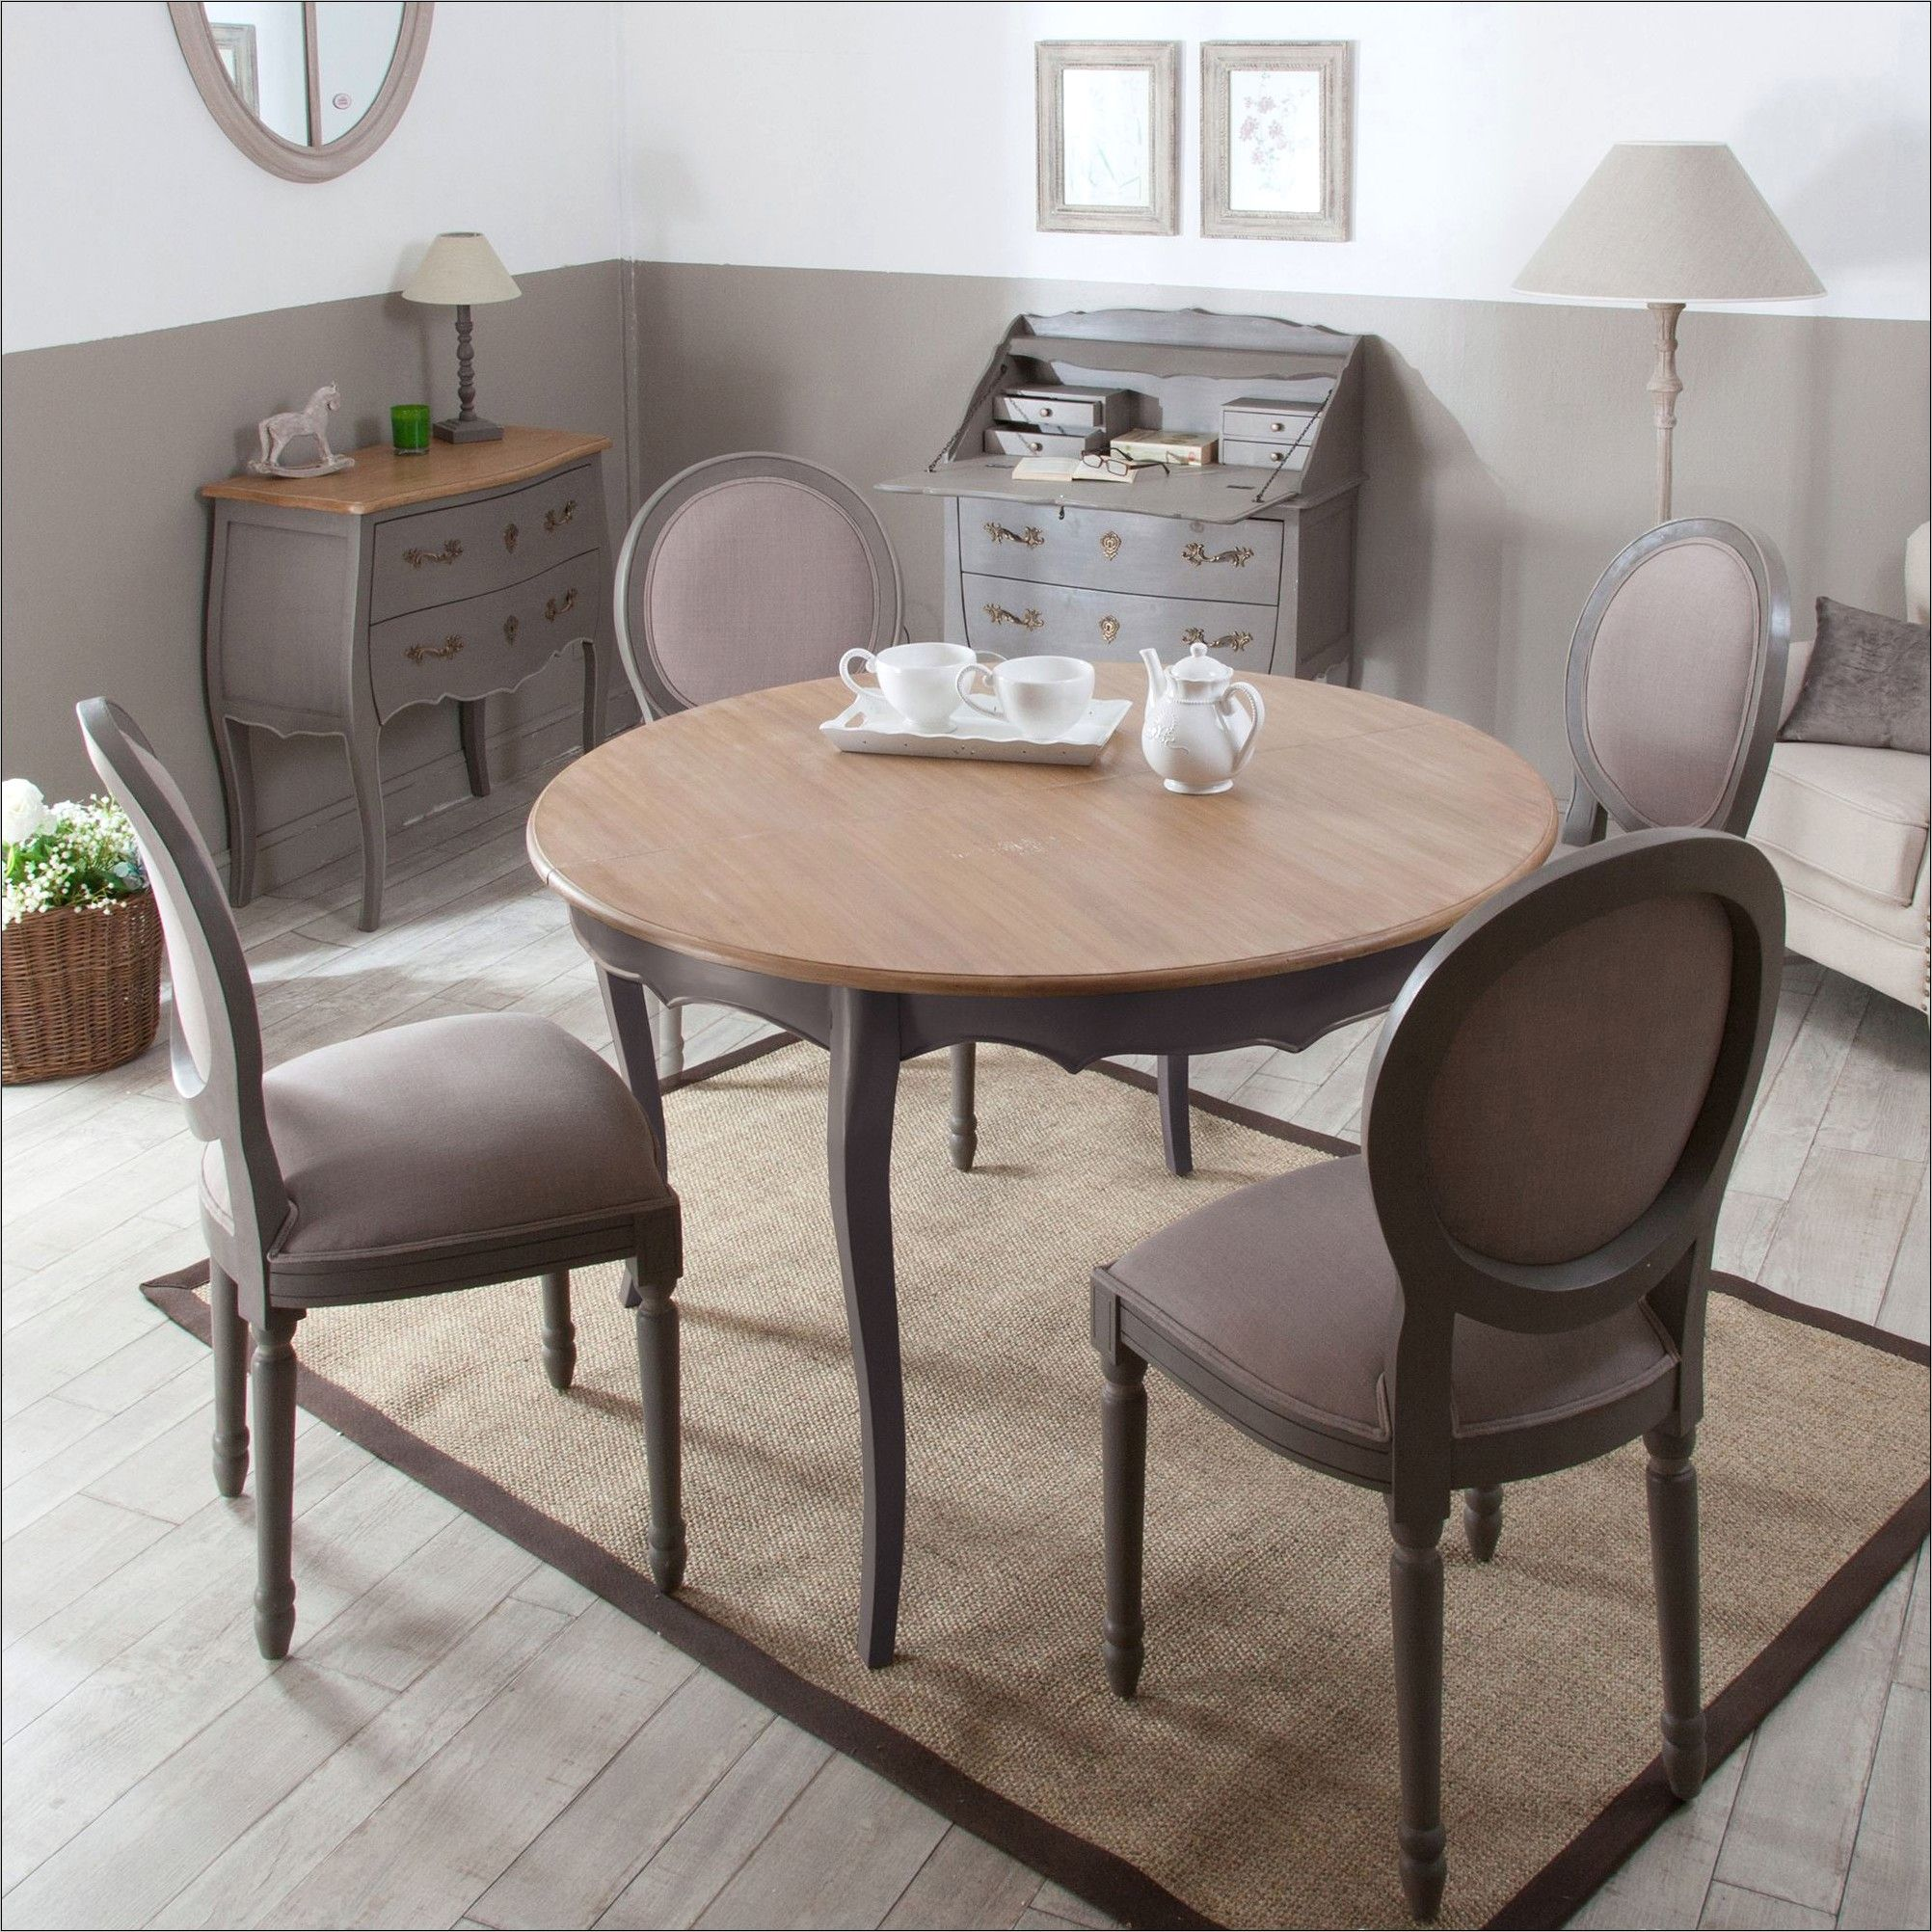 Une Table De Salle A Manger Merisier Et Chaise Moderne In 2020 Shabby Furniture Home Decor Furniture